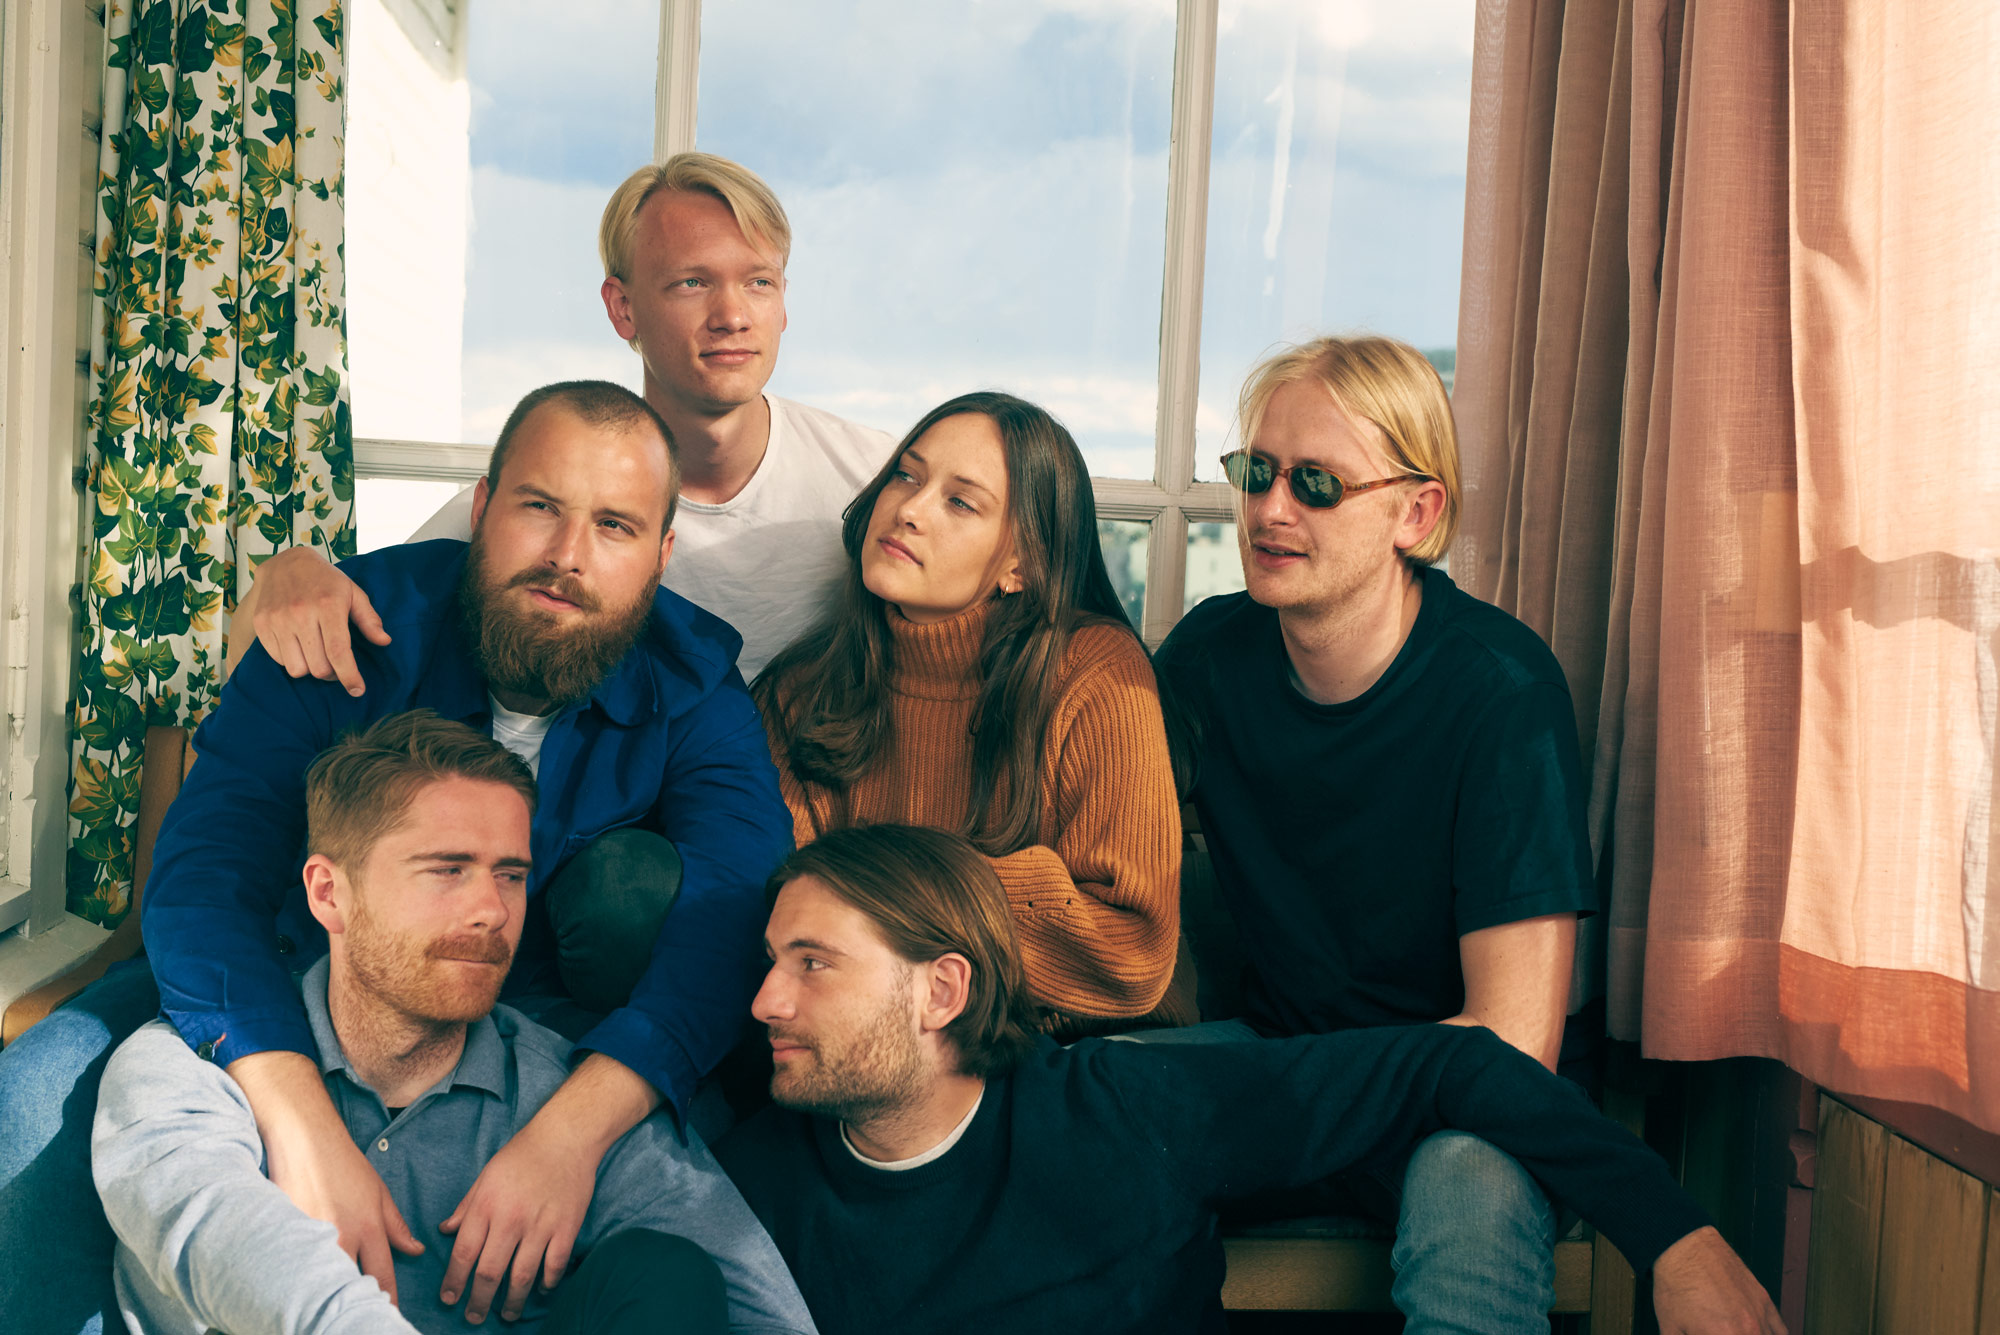 Portrait of Norwegian pop band Svømmebasseng